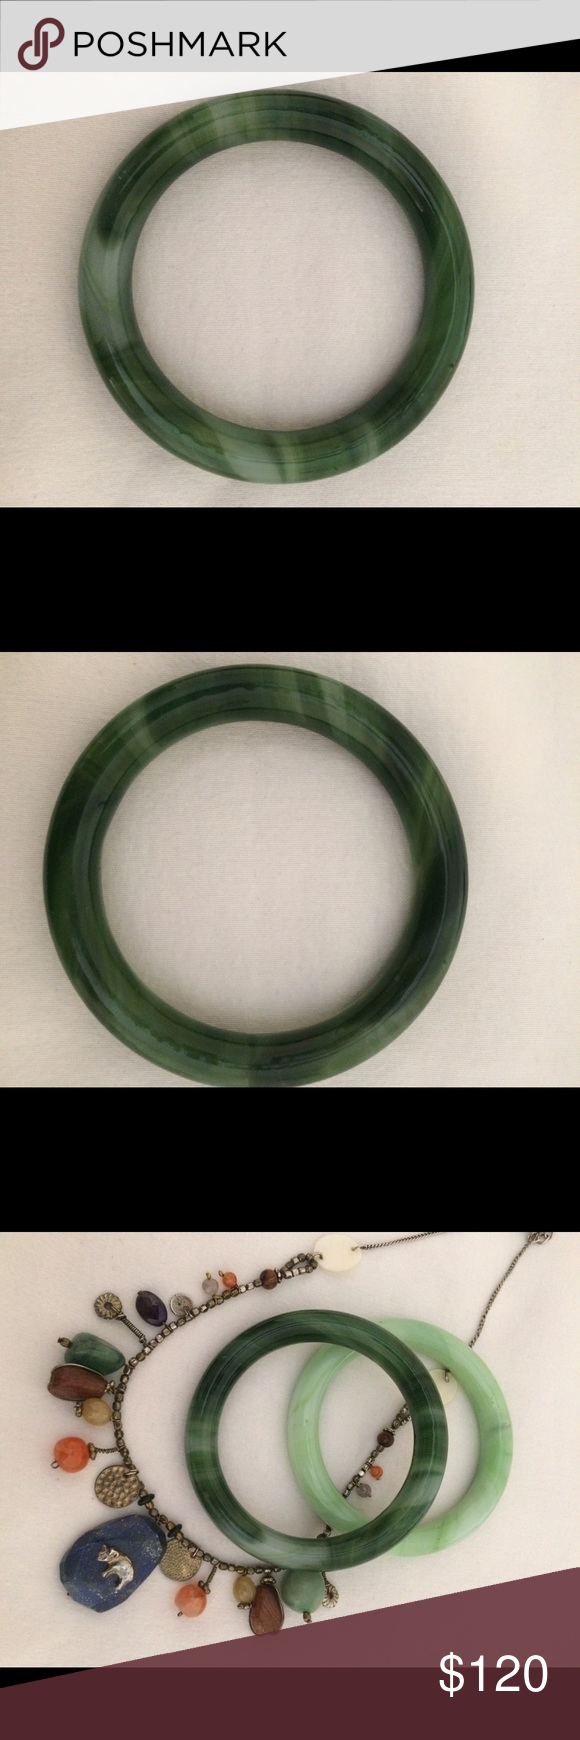 sc bracelet for jade modern online antique mm chinese auction sale inside at diameter genuine jadeite bracelets